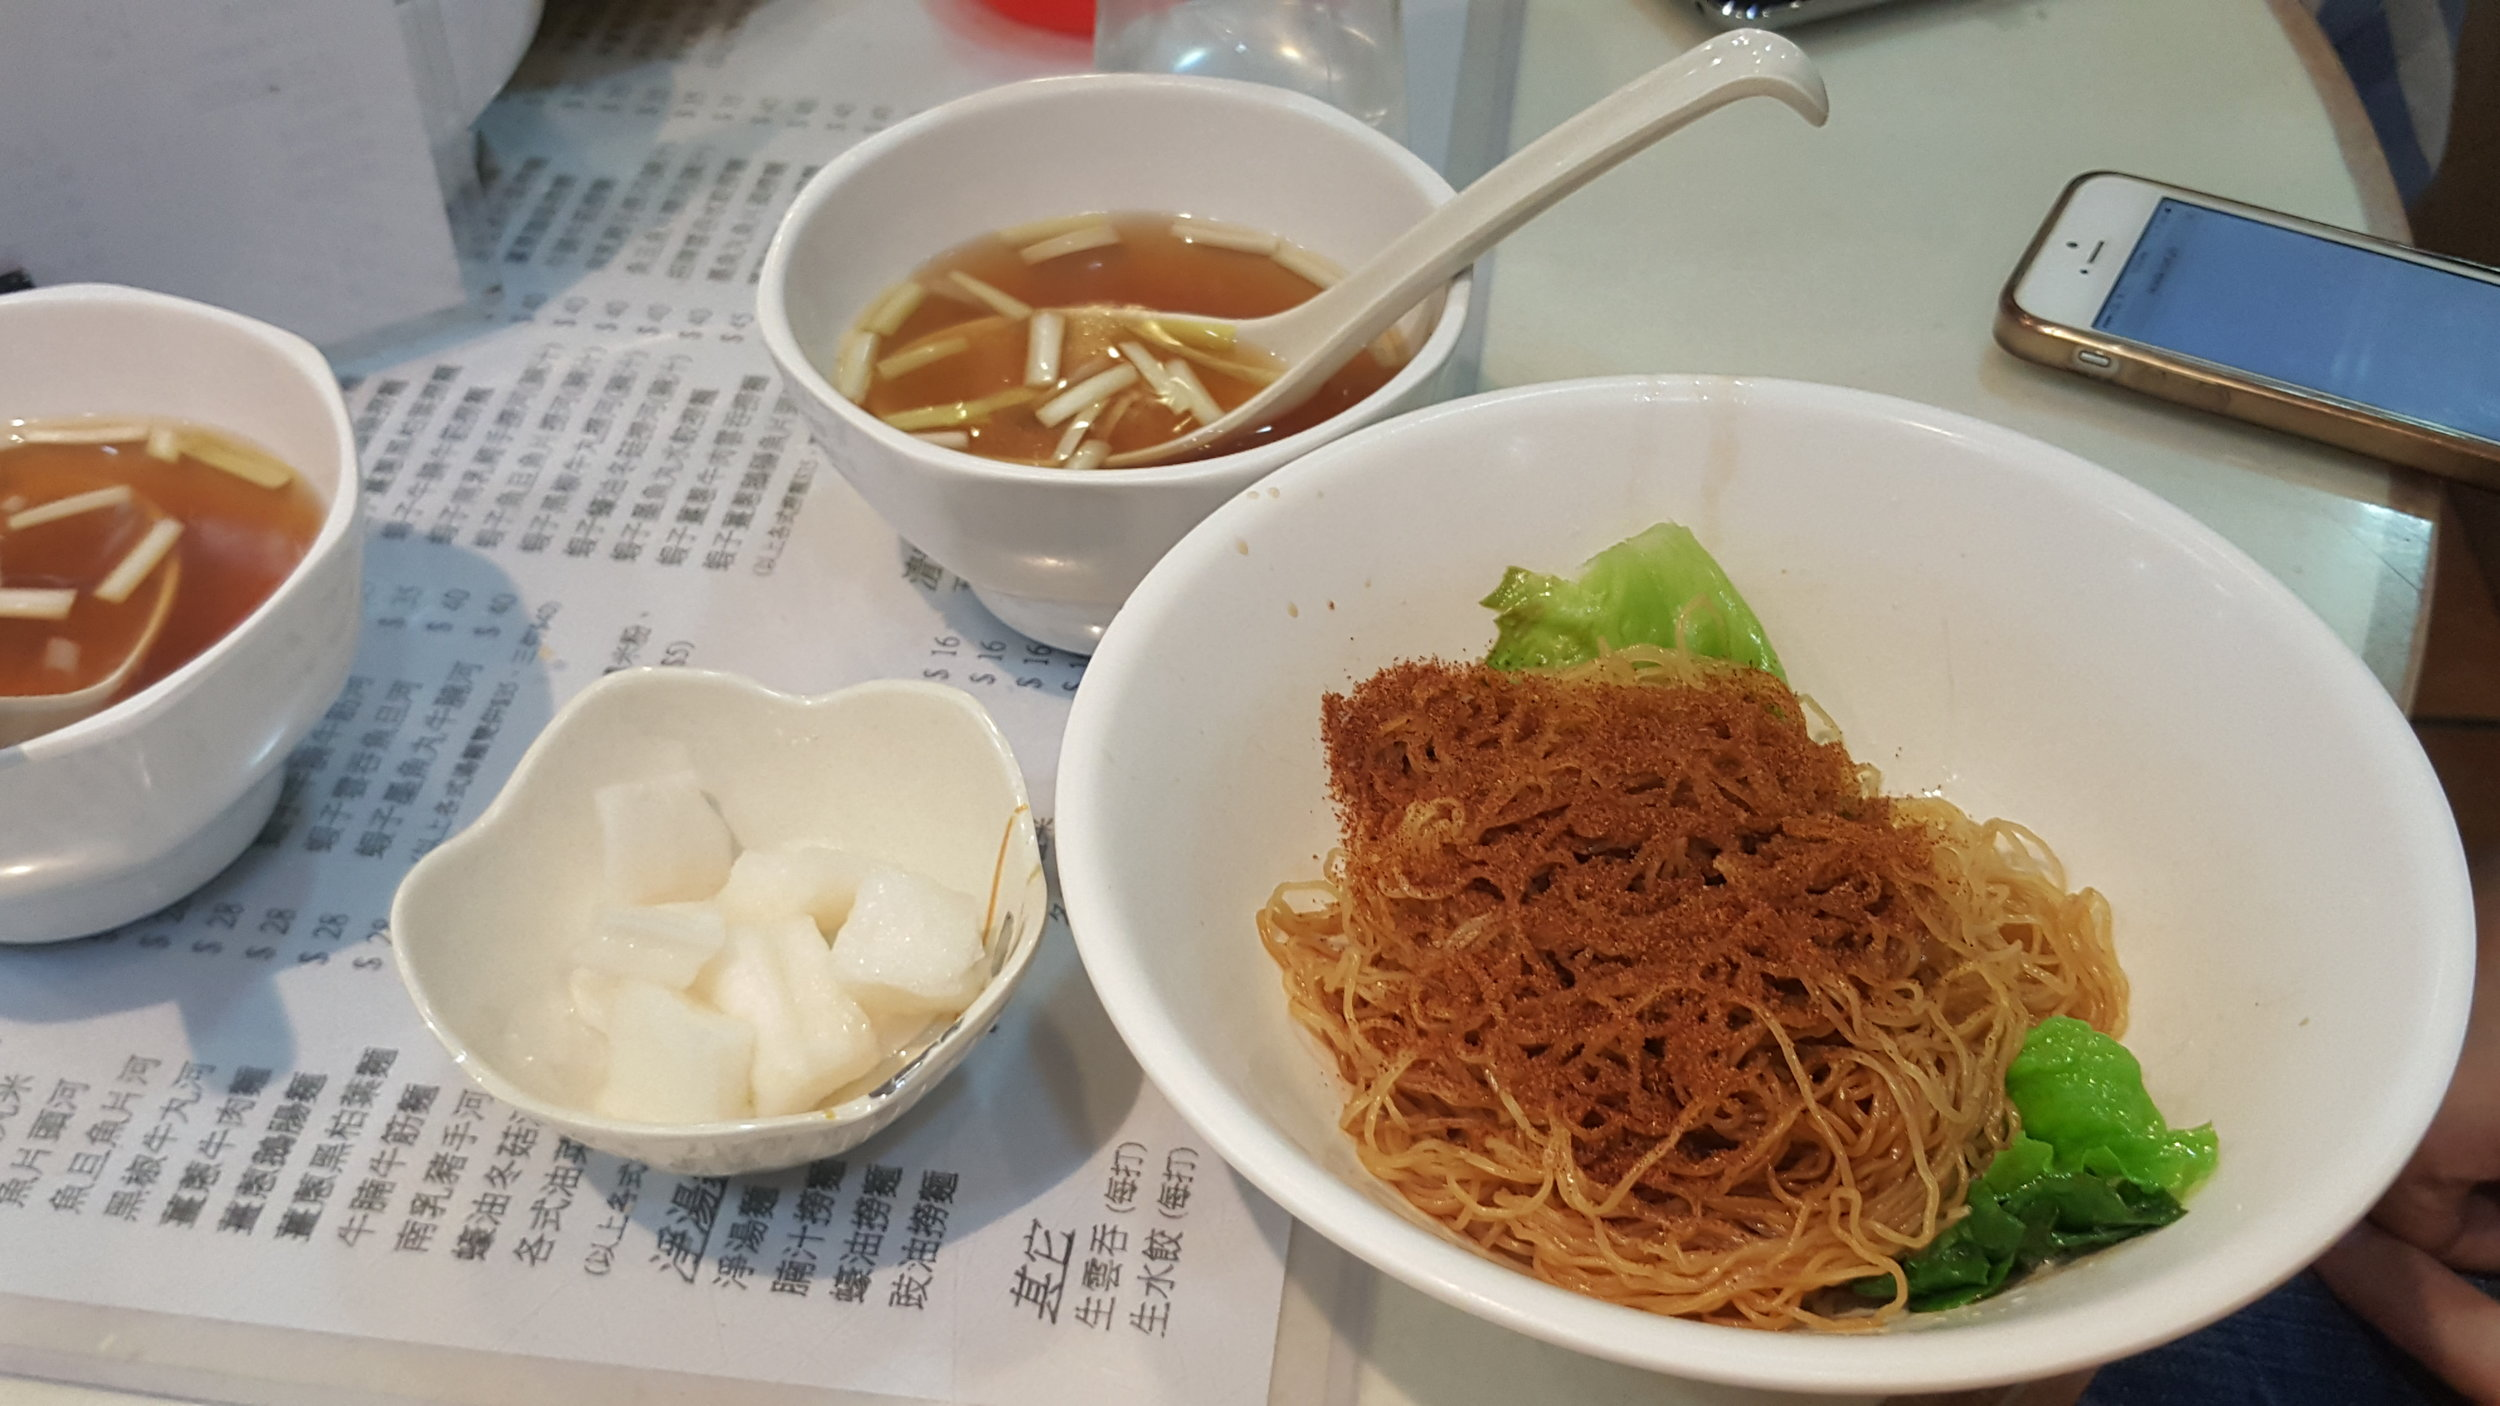 Trying out ha zi mee (dry noodles) from a popular noodle shop